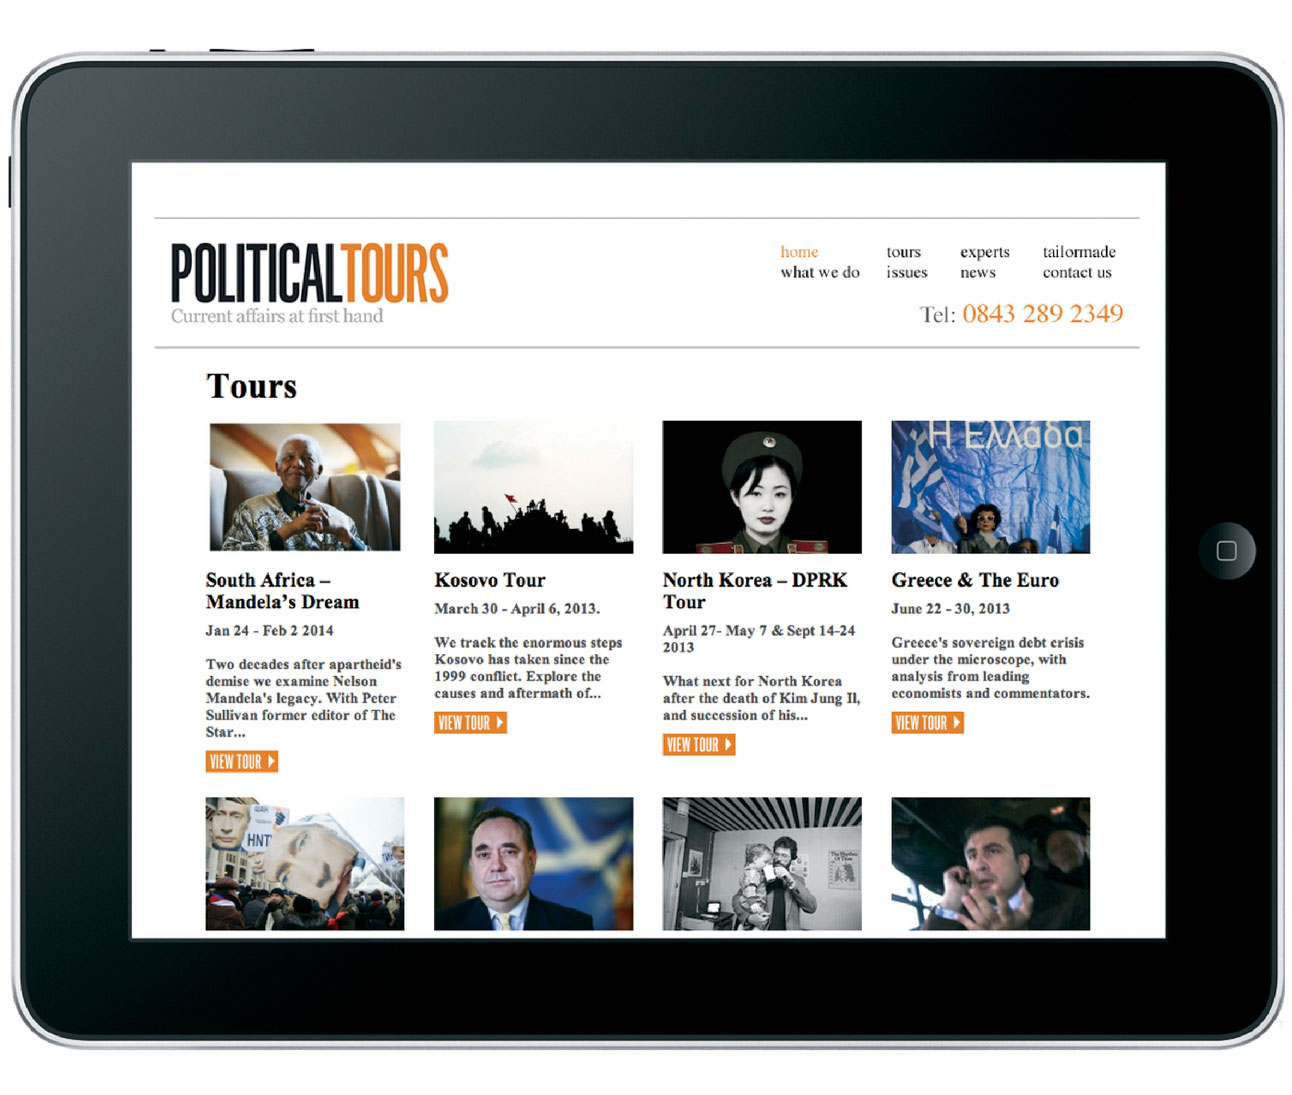 Website Design for Travel Company Political Tours